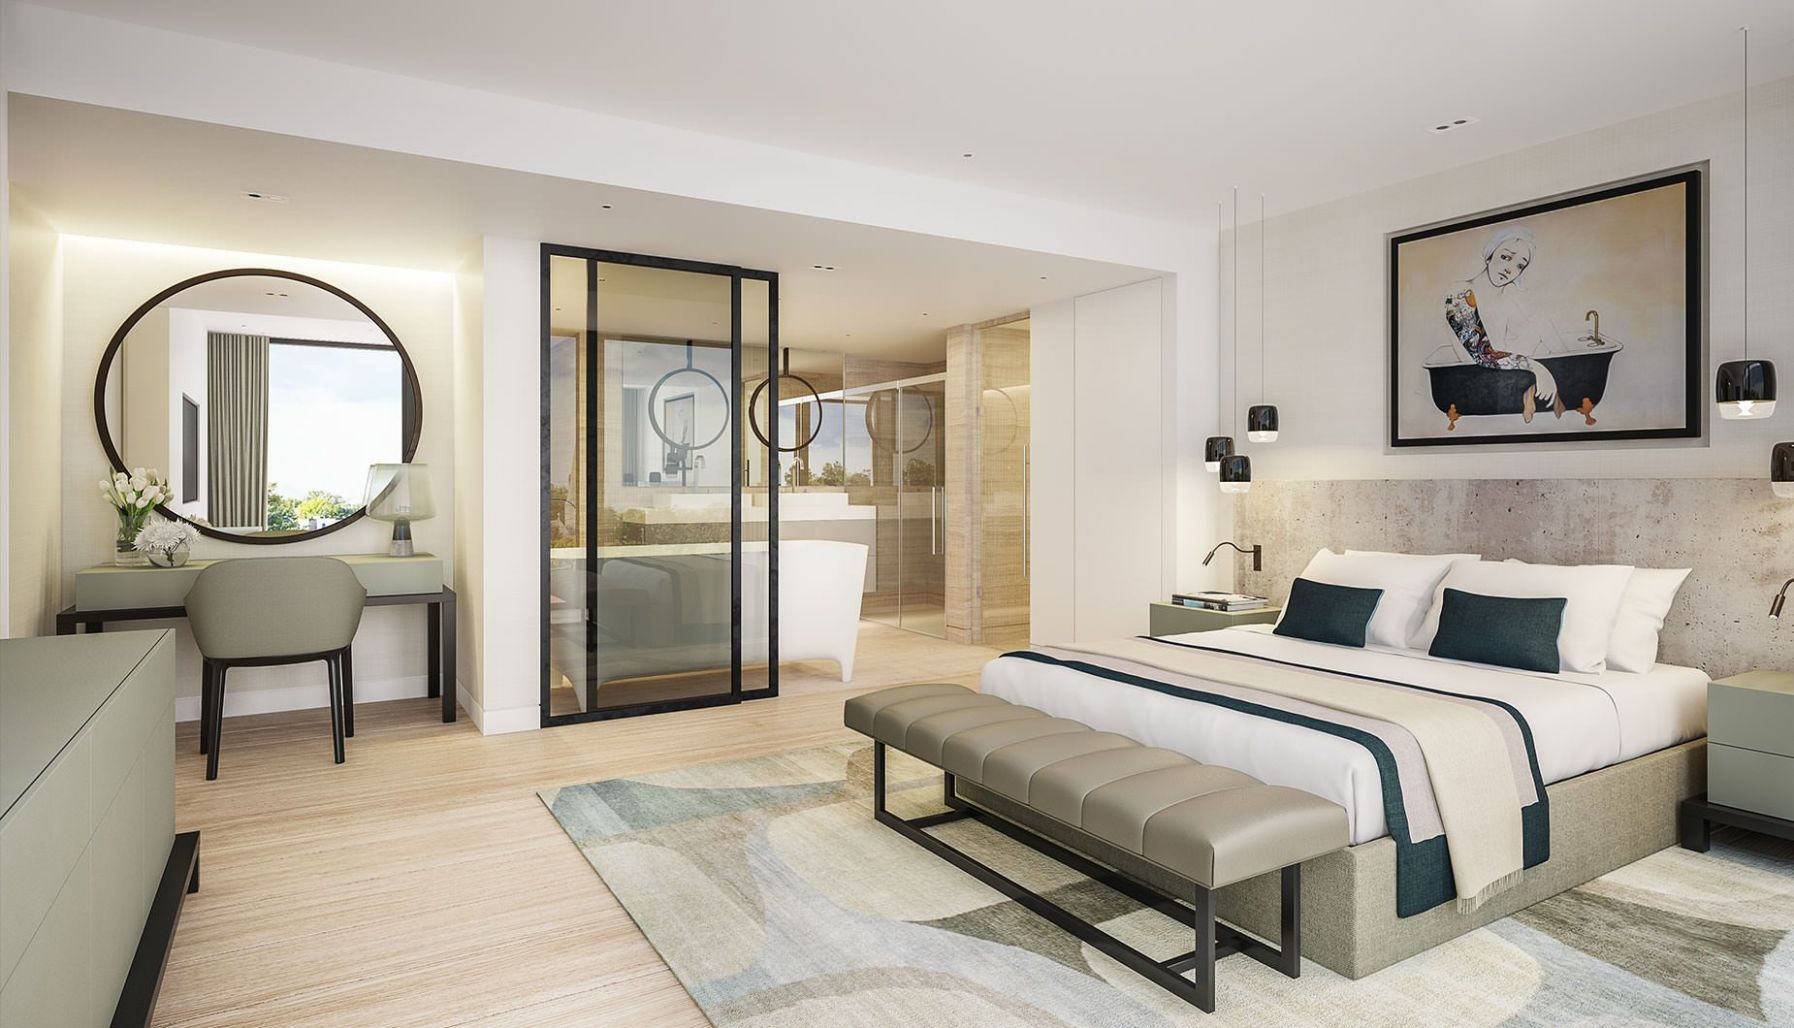 11 Master Bedroom Ensuite Designs, 11 Beautiful Master Bedroom ...